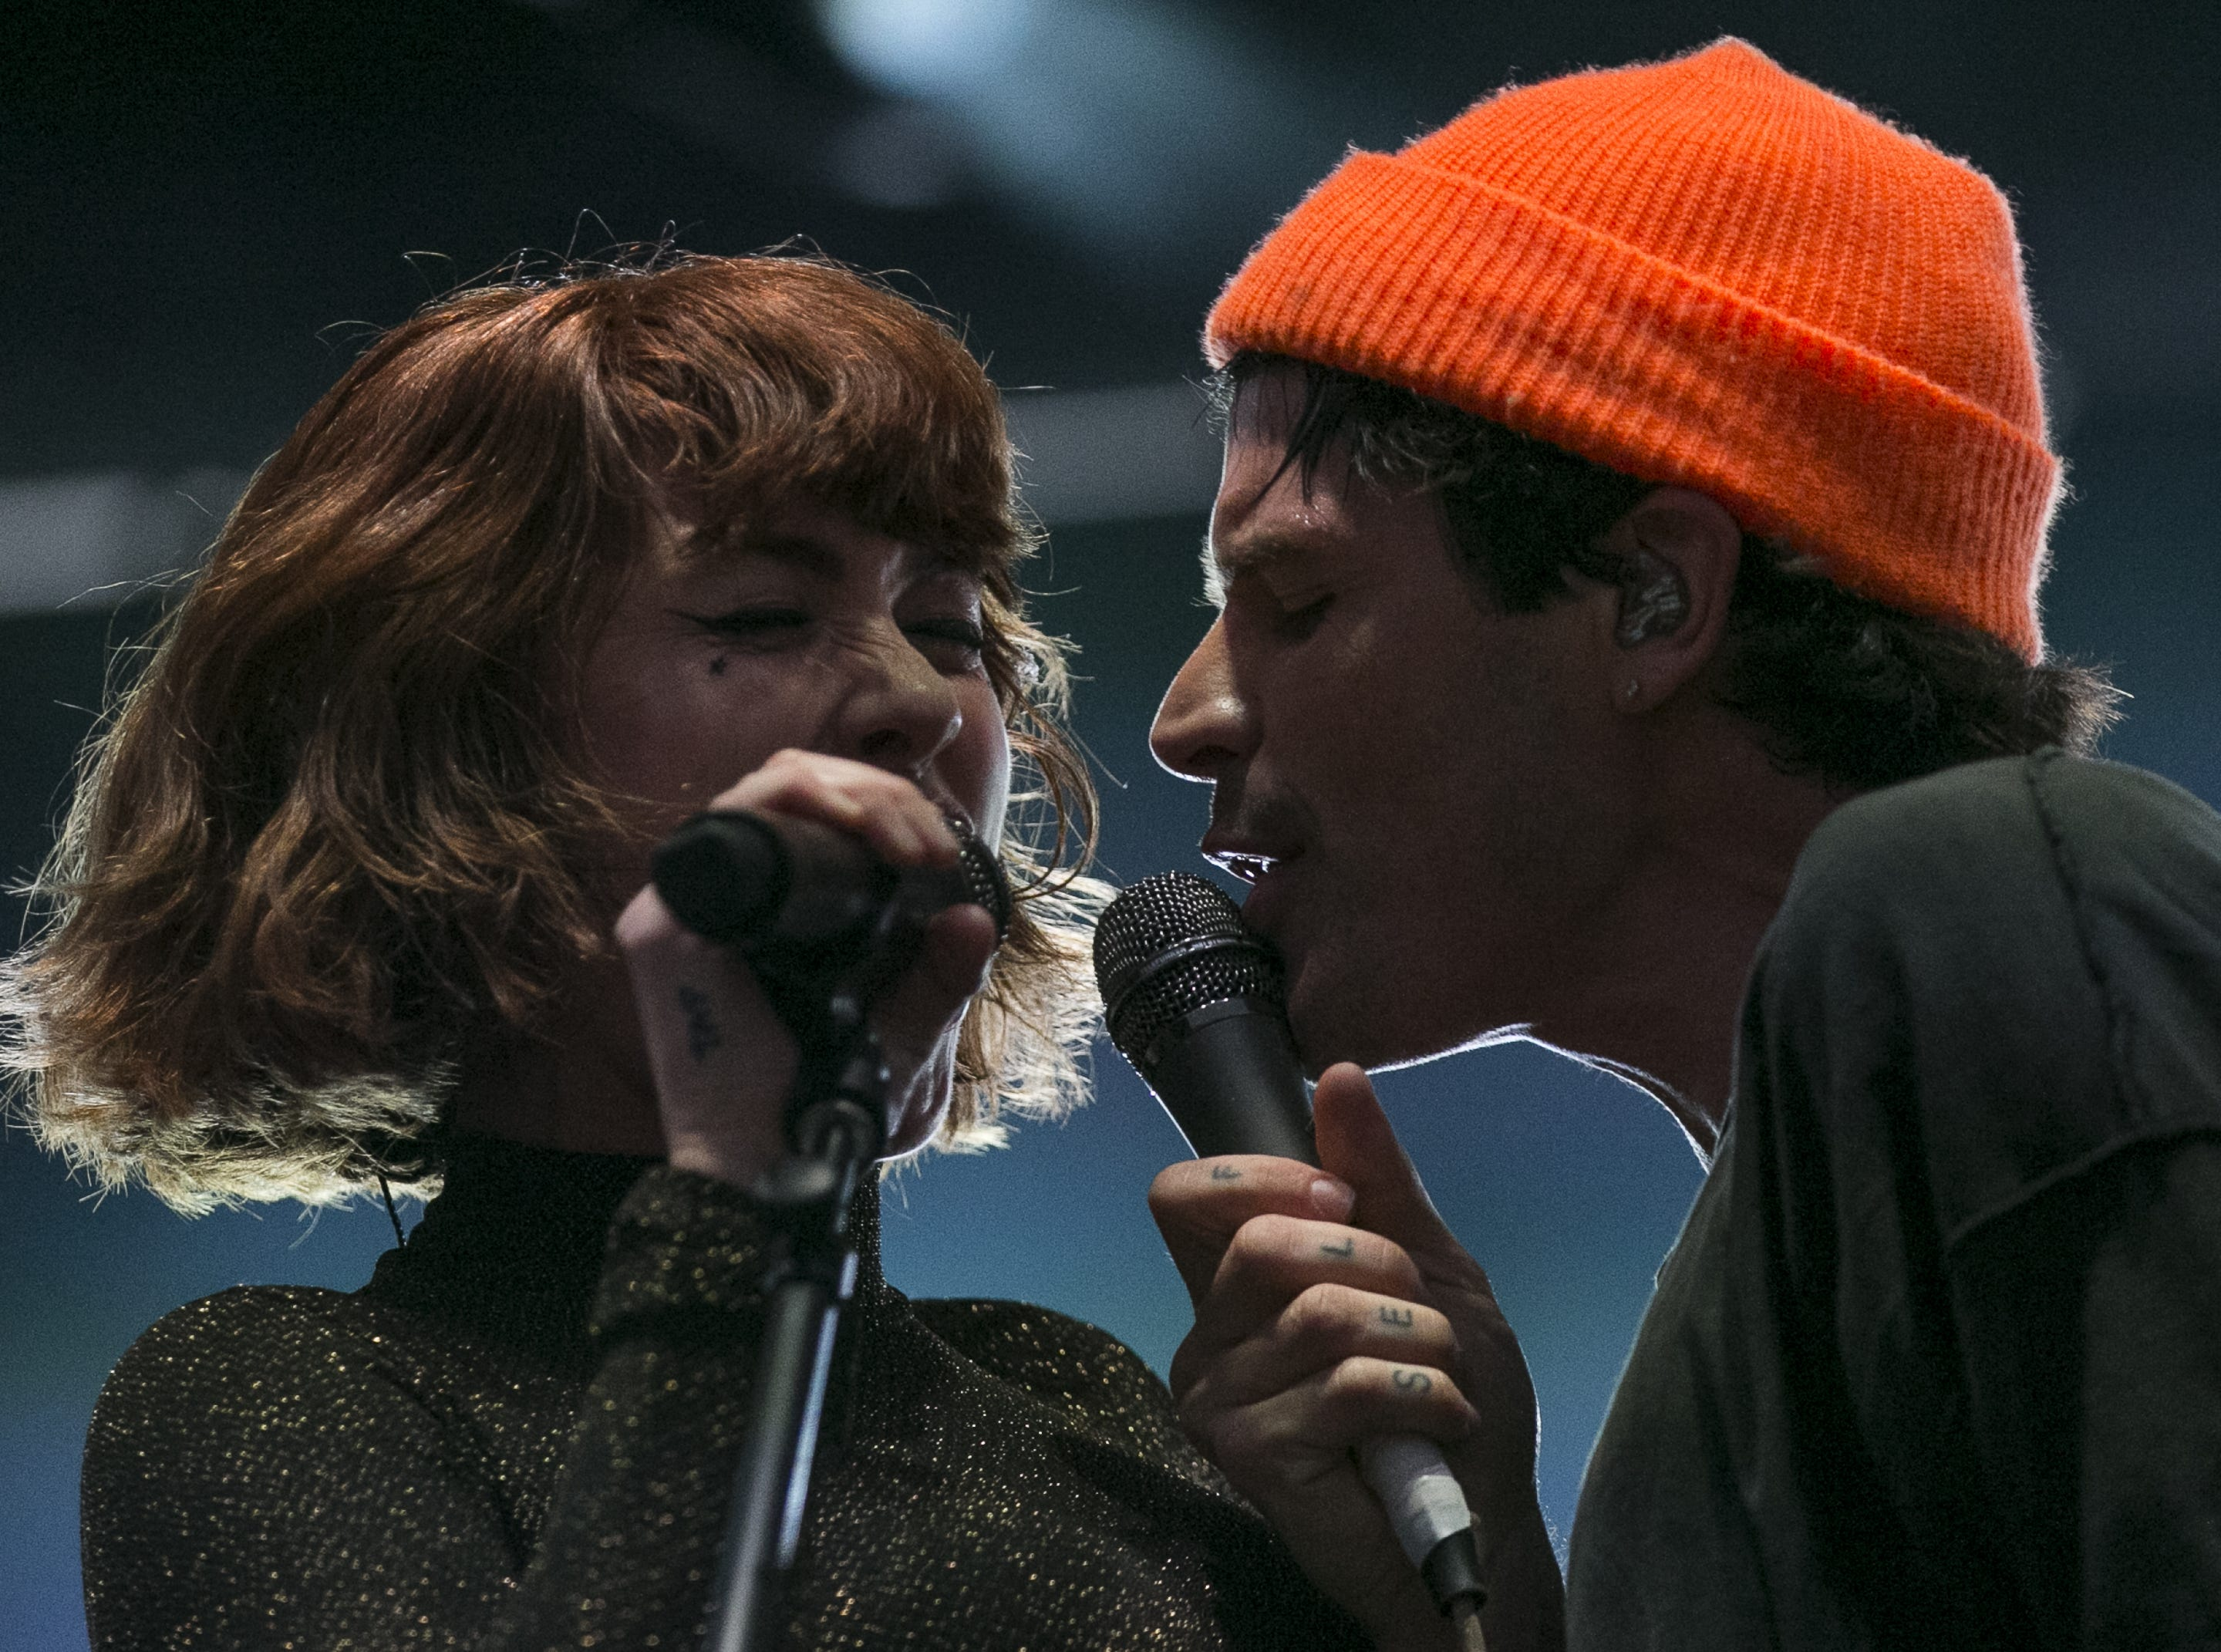 Grouplove performs at the Innings Festival at Tempe Beach Park in on March 2, 2019.